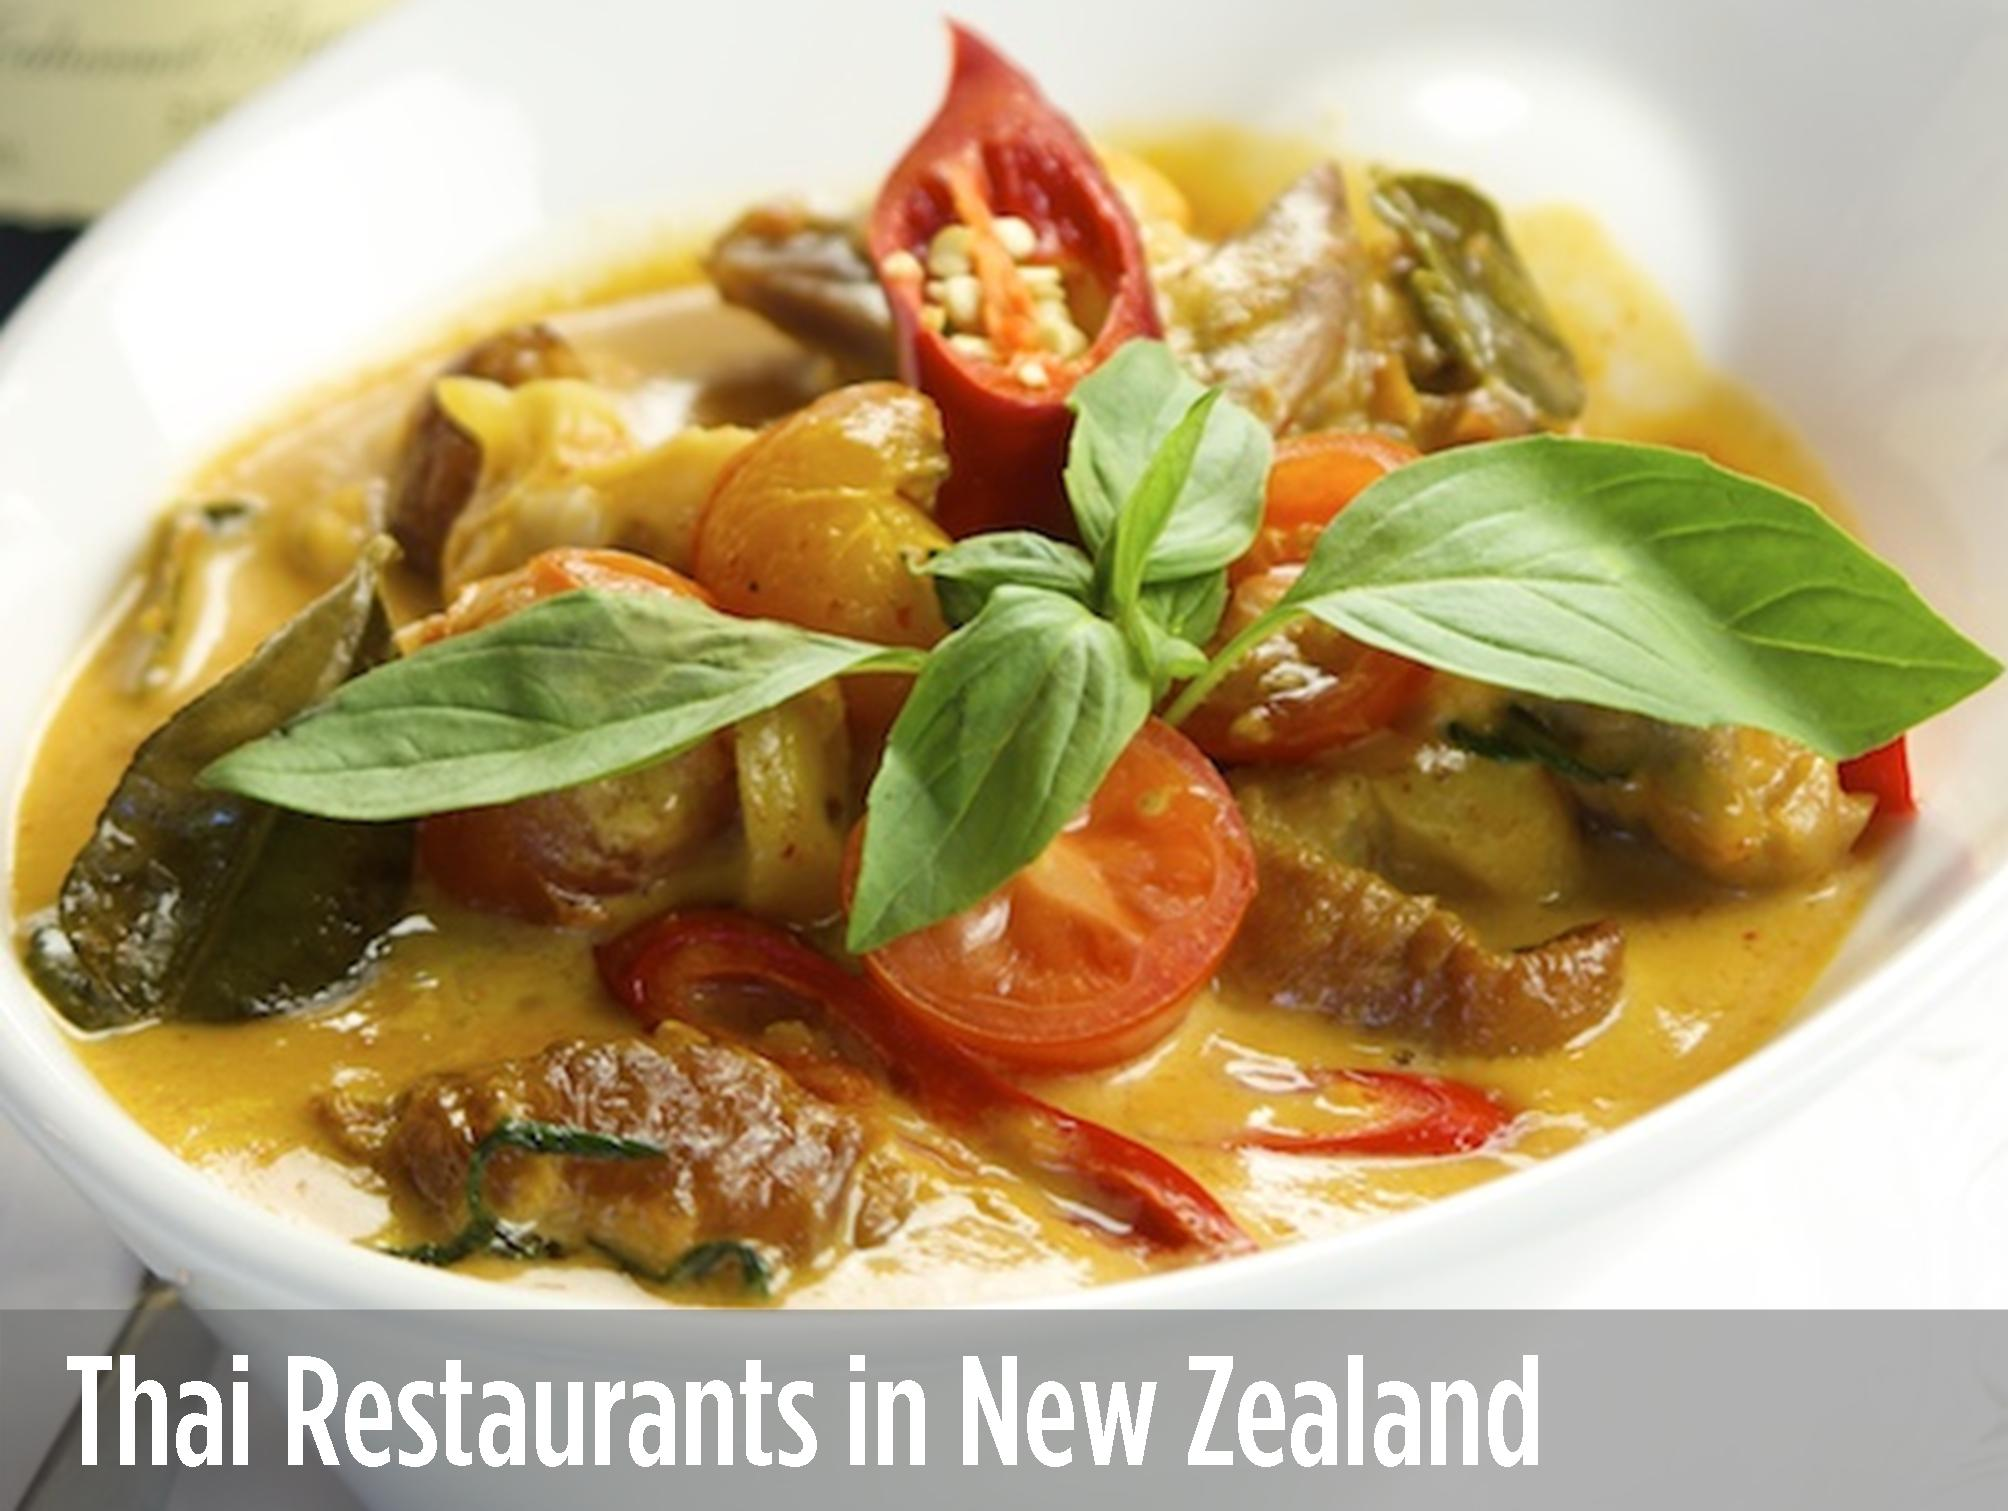 Thai Restaurants in New Zealand